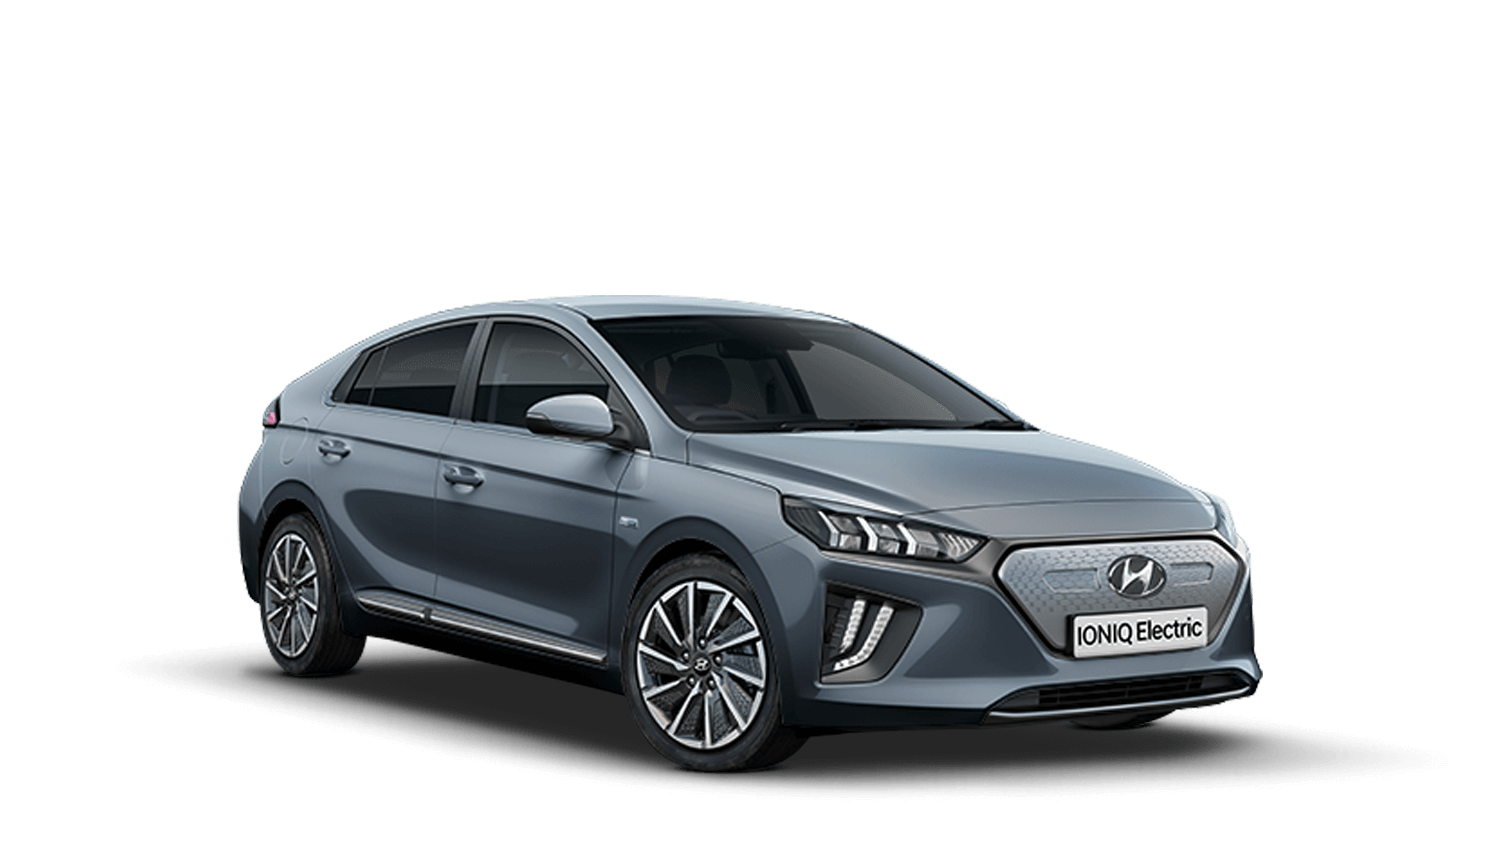 Ioniq Electric Leasing Offers